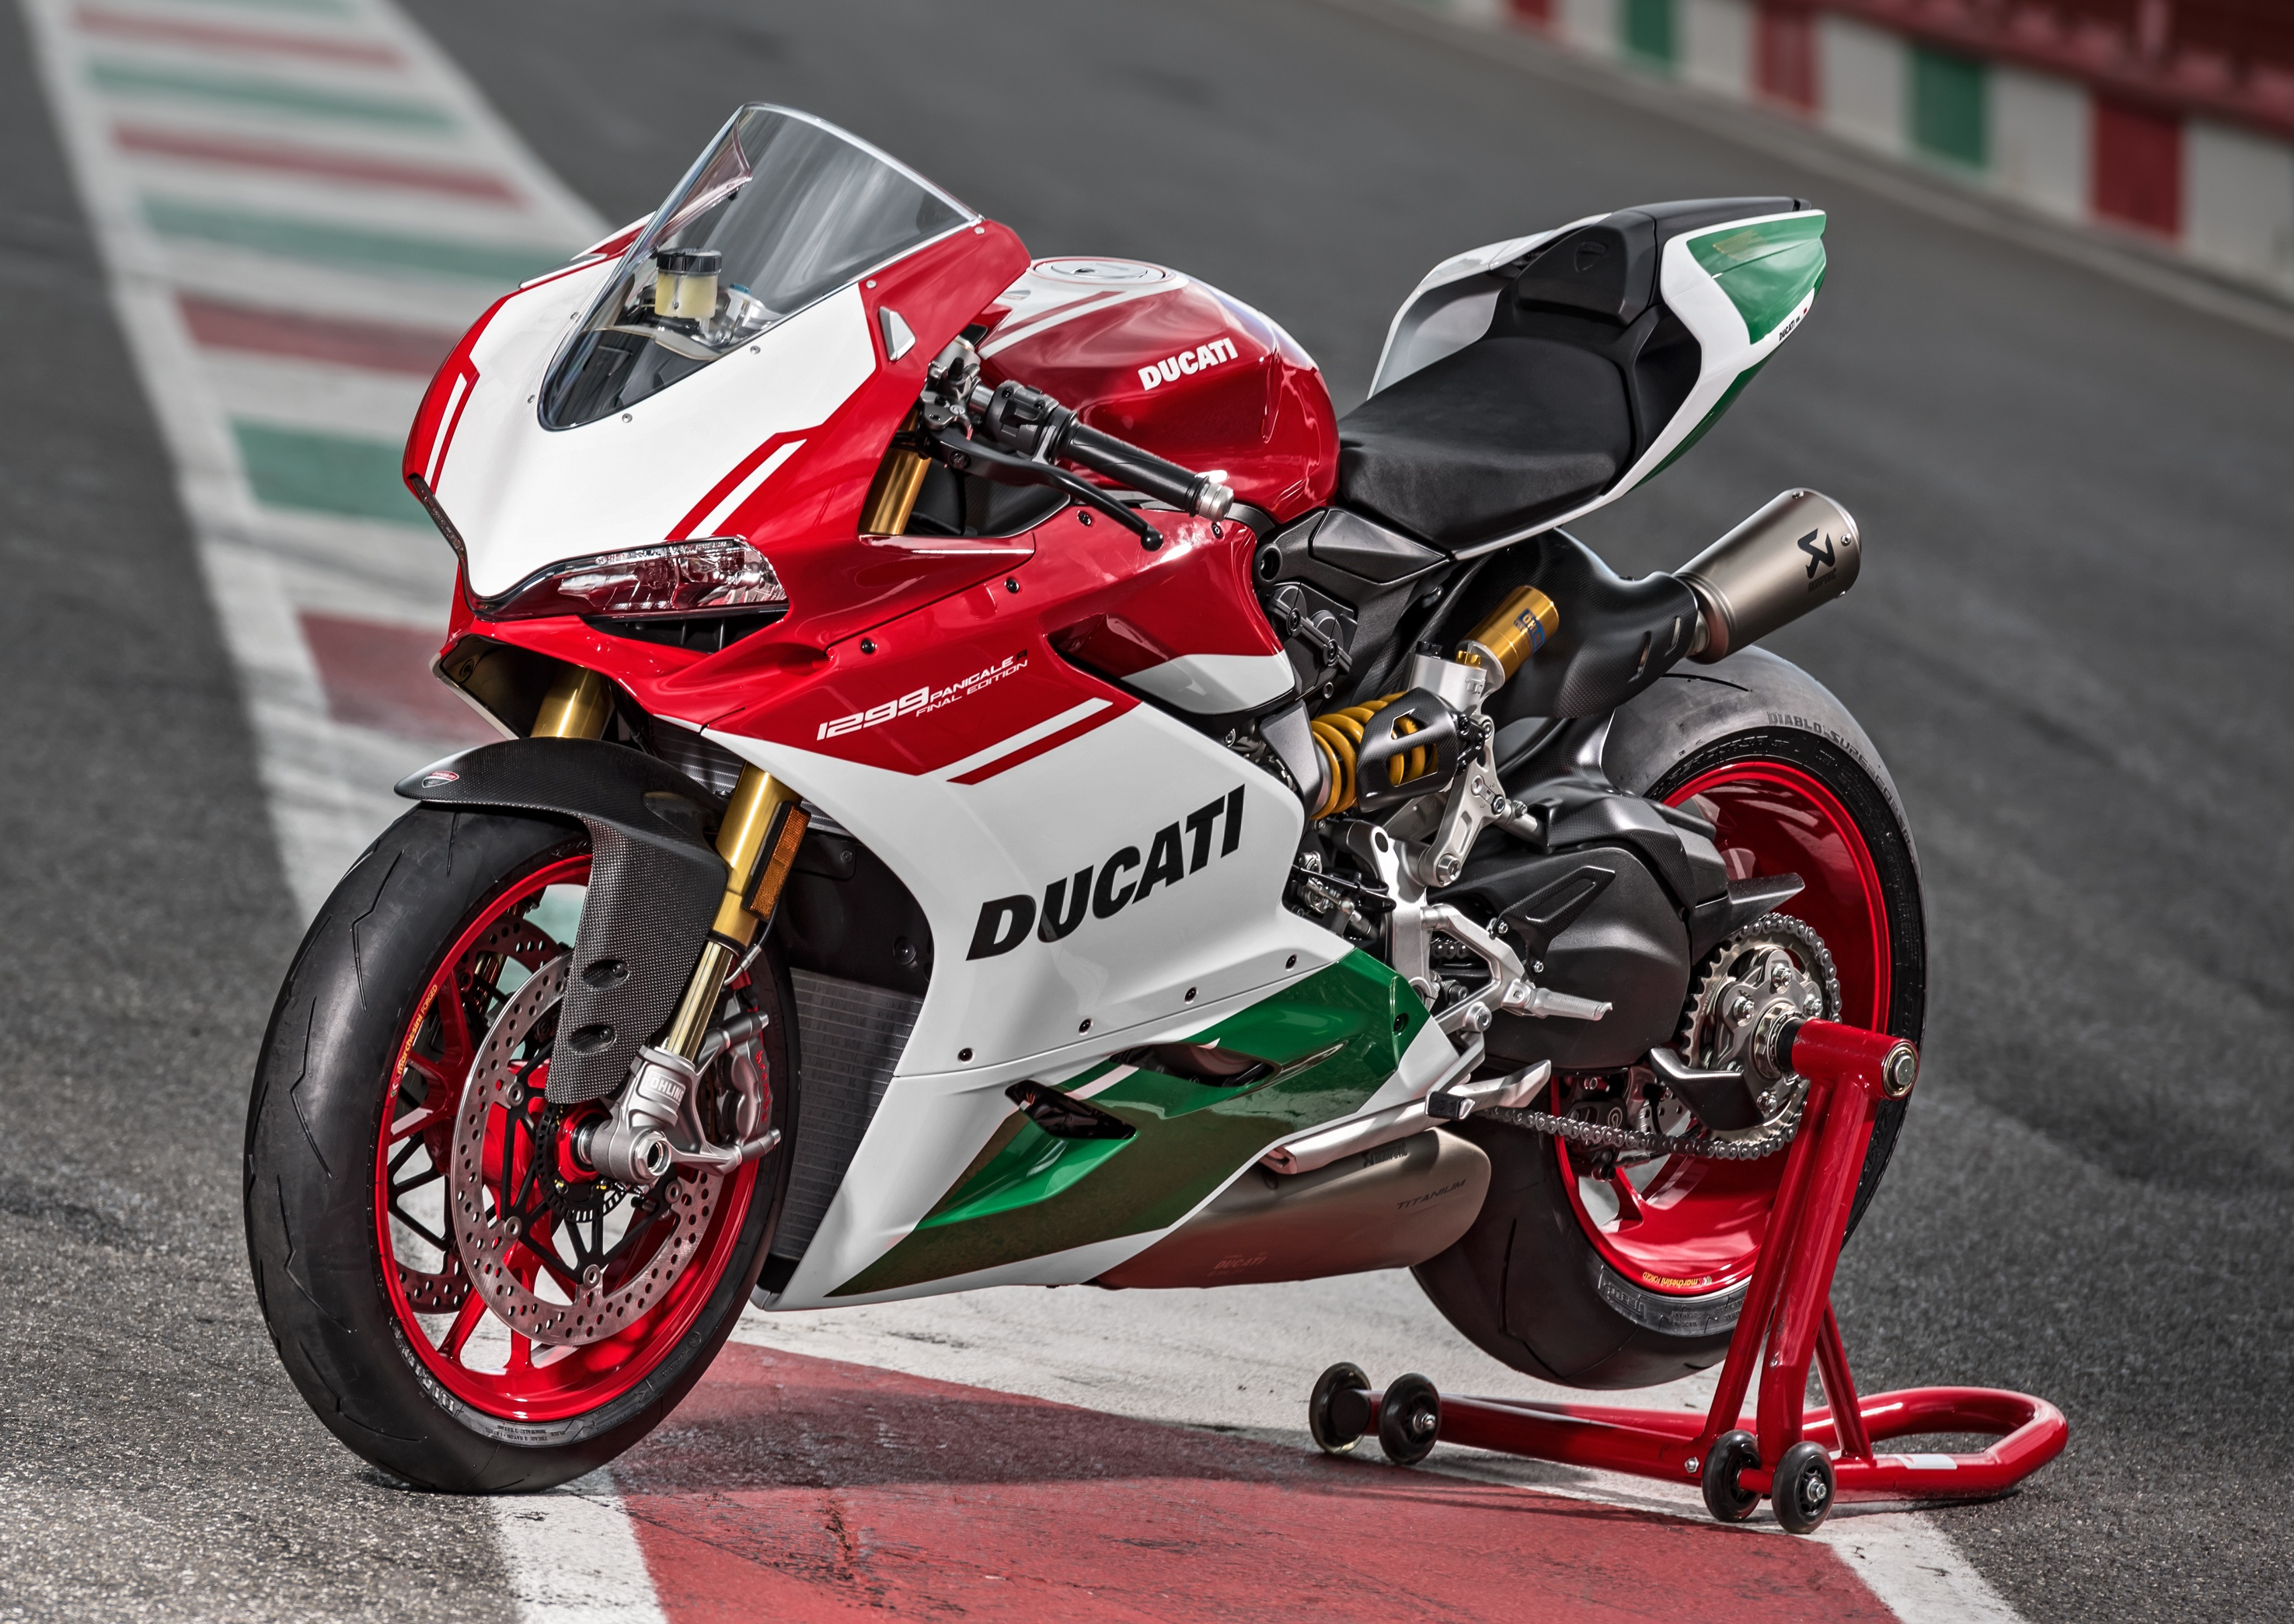 Ducati to sell 1299 Panigale V-twin till at least 2020 Image 749245